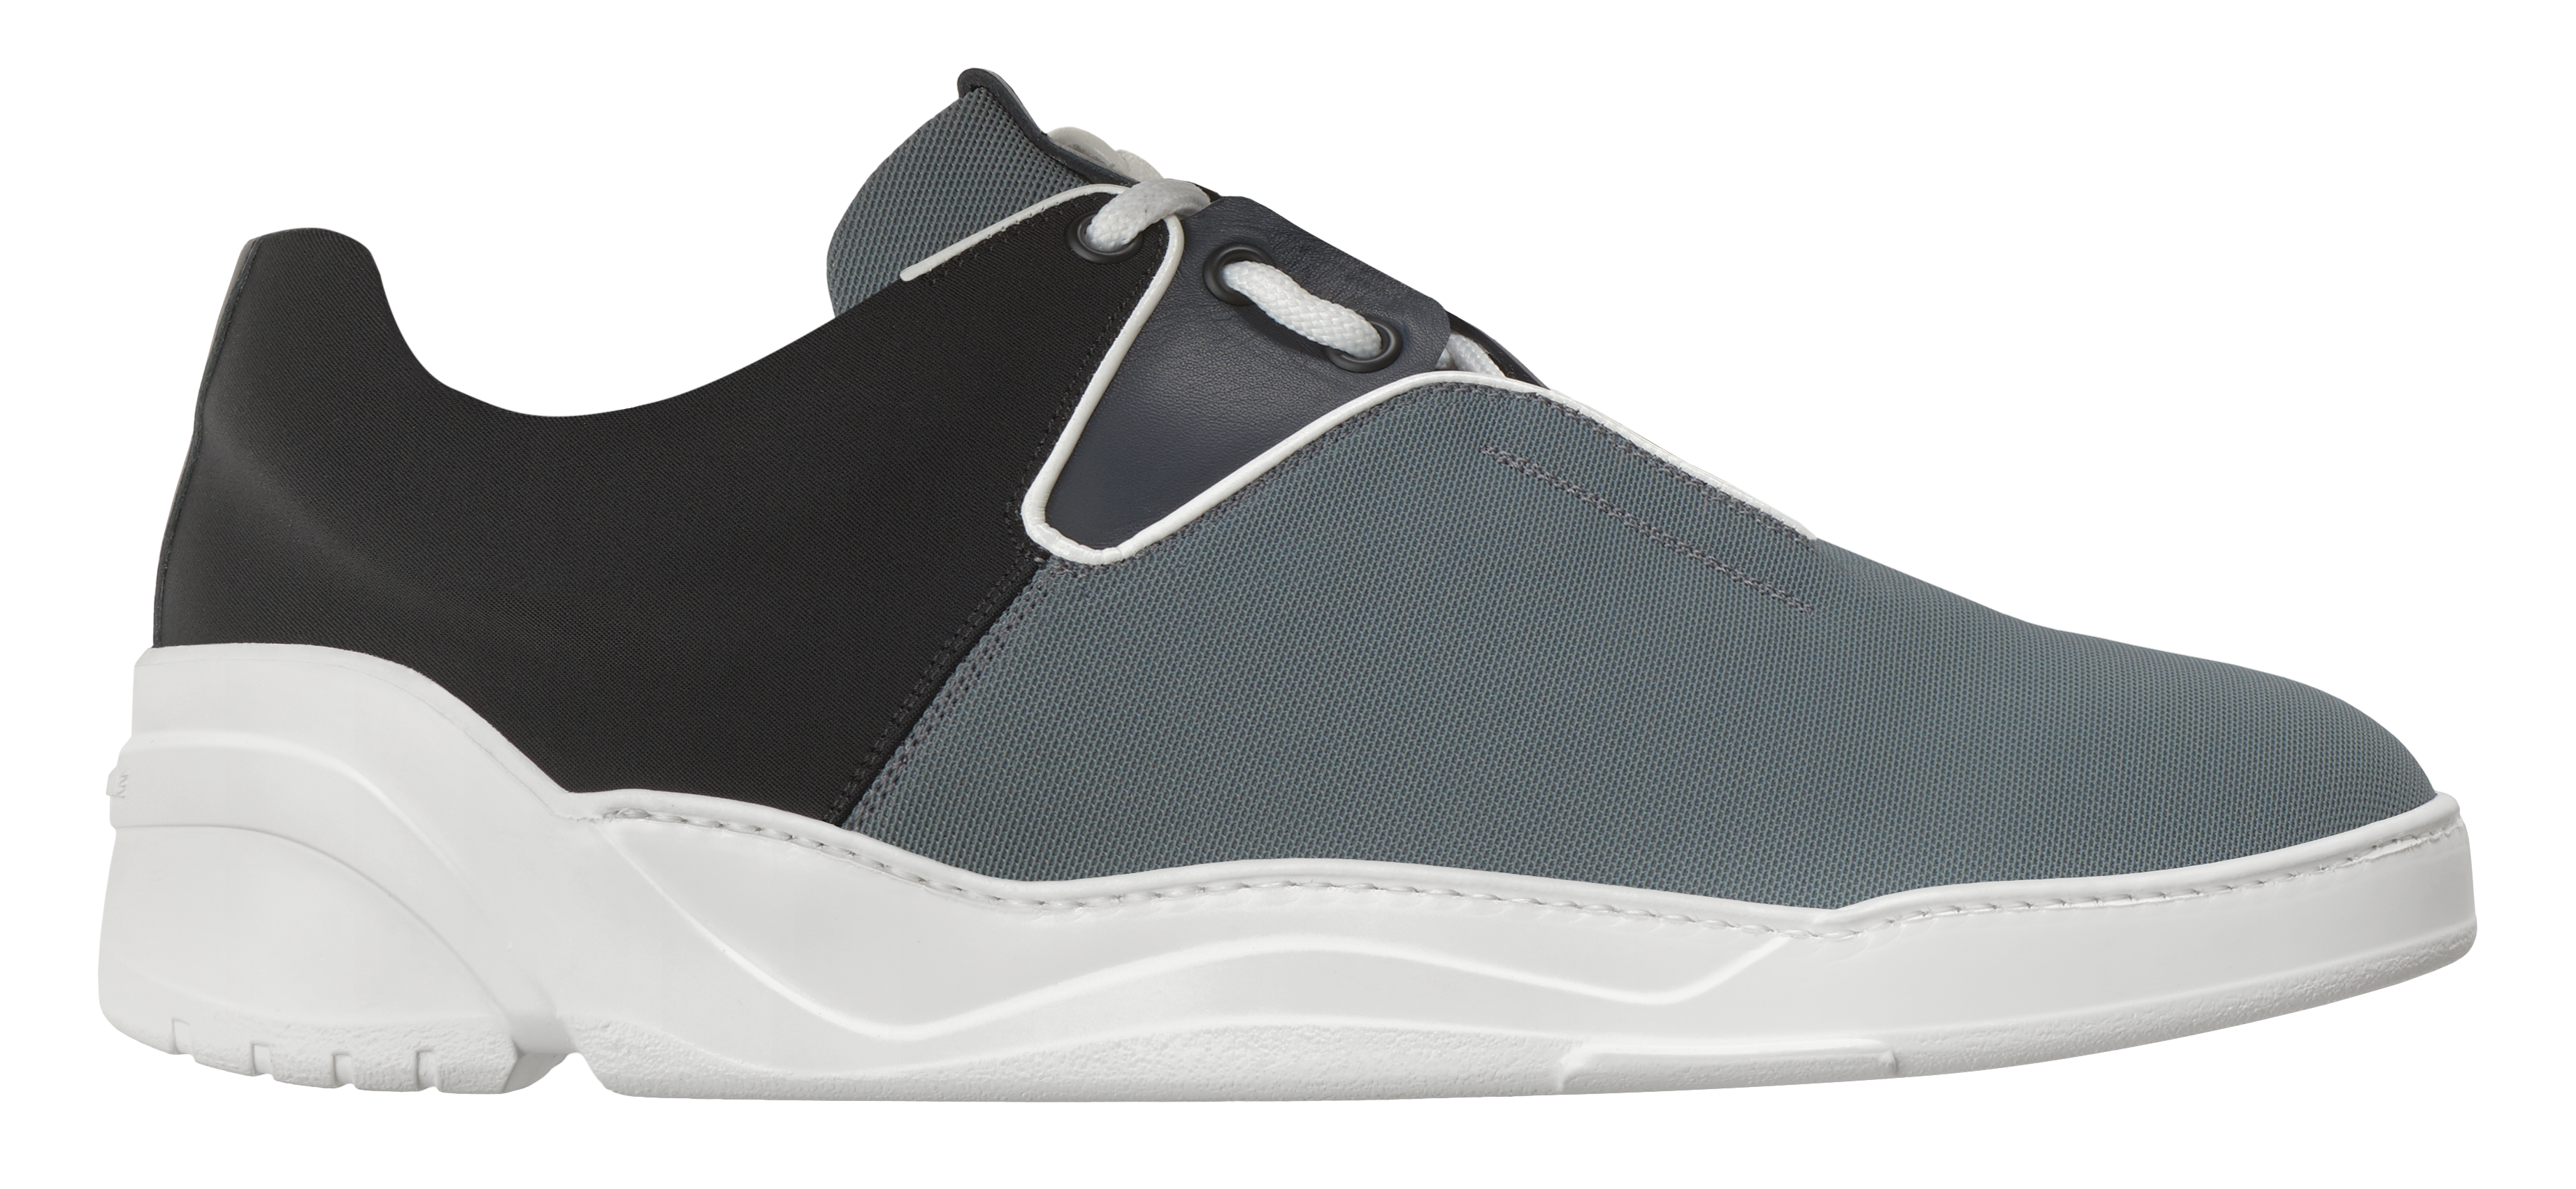 Dior Homme sneakers B17 for Winter 2015